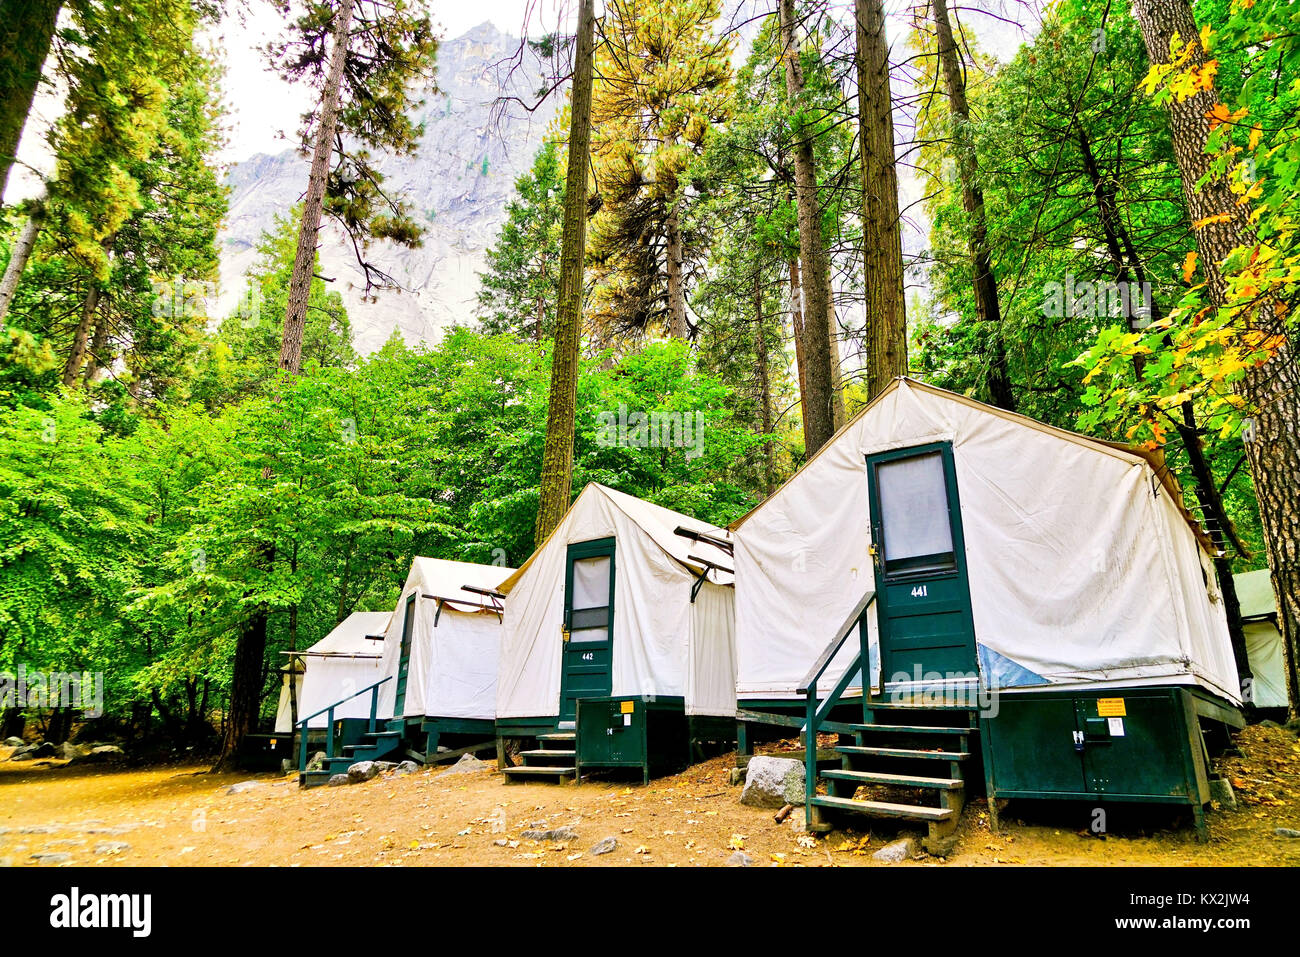 park at wawona beautiful cabins of lodging inside yosemite national